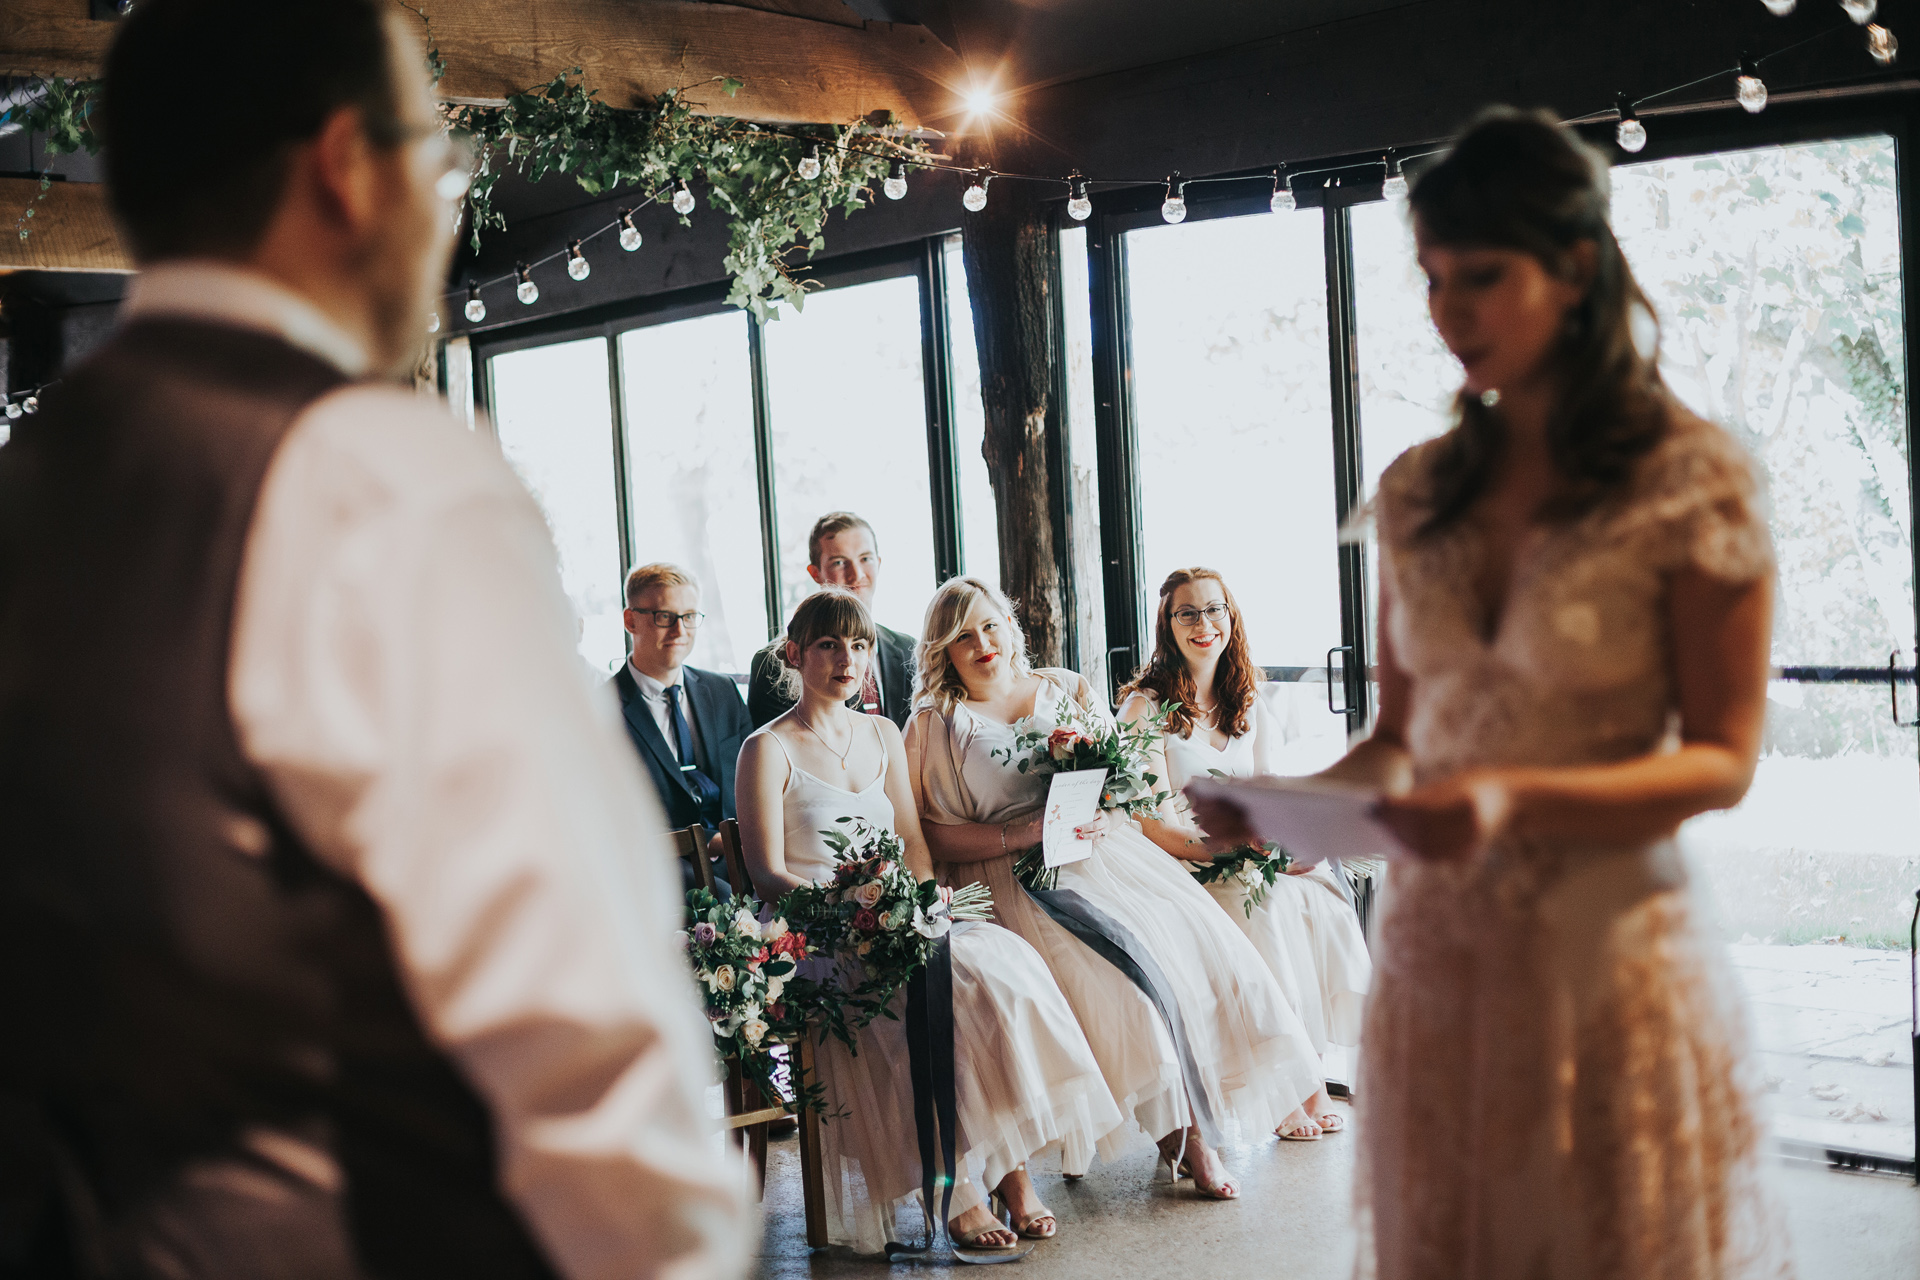 Bridesmaids watch couple say their vows.